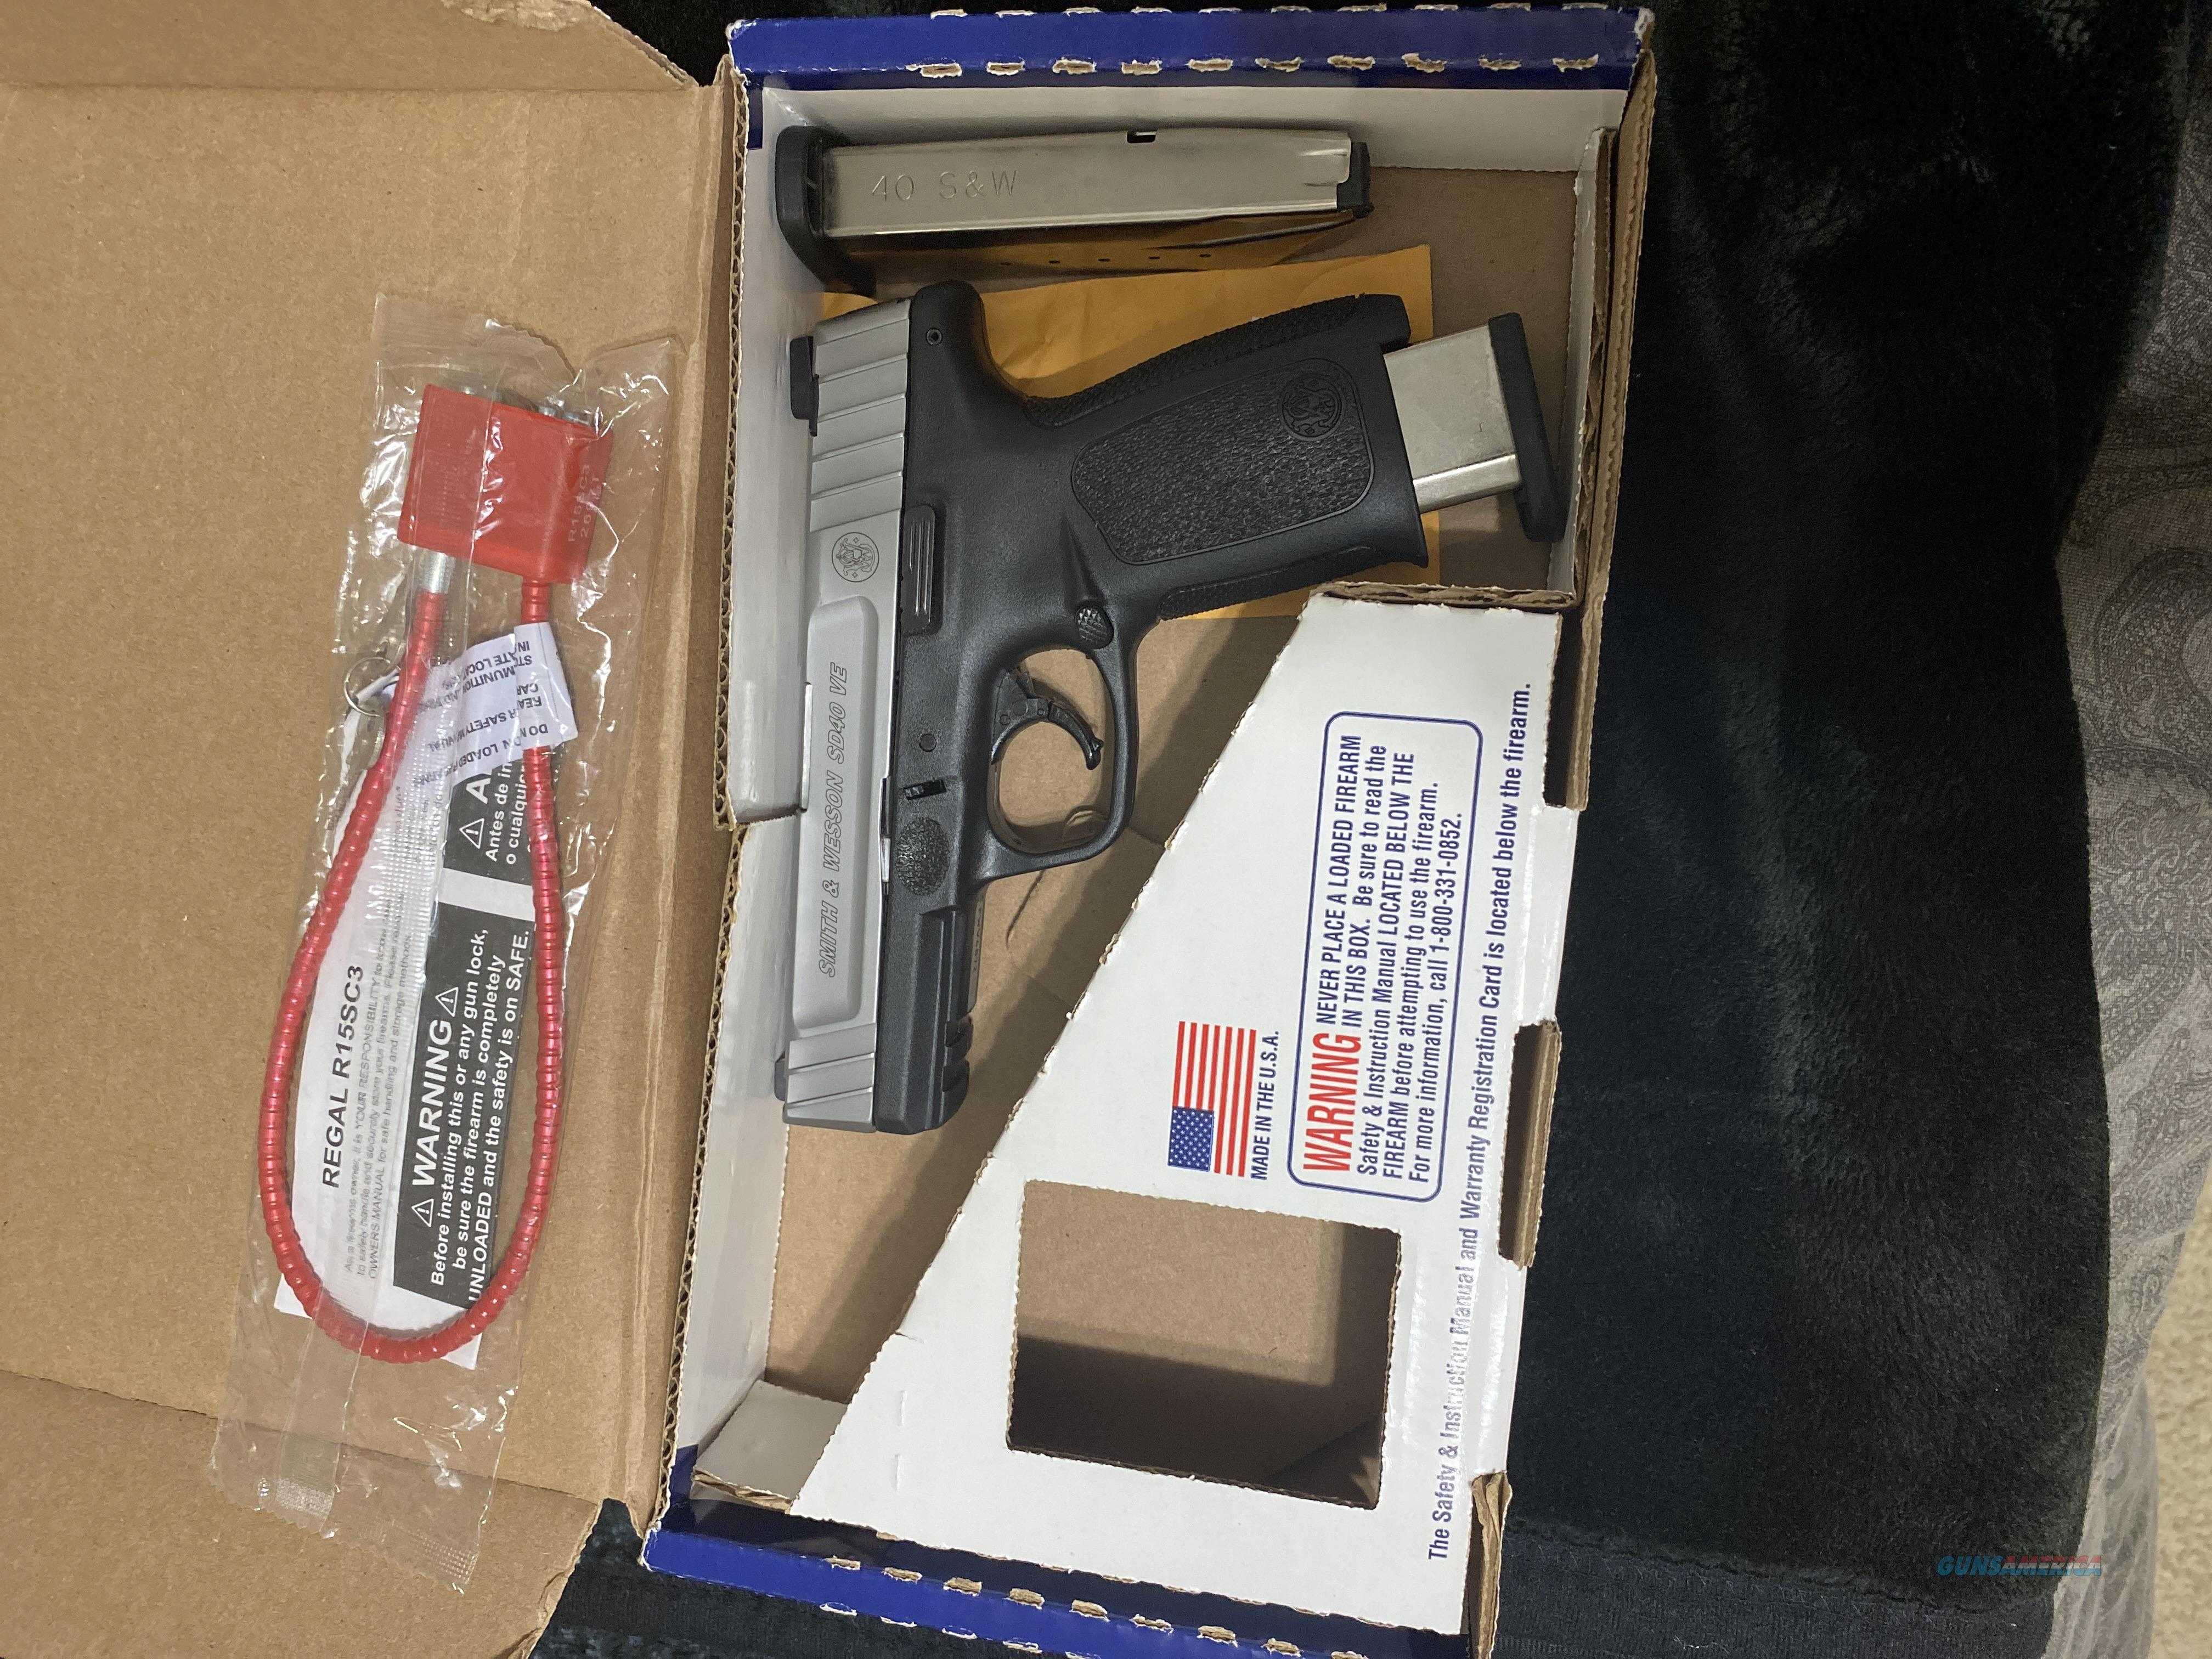 LIKE NEW MODEL SD40VE  Guns > Pistols > Smith & Wesson Pistols - Autos > Polymer Frame